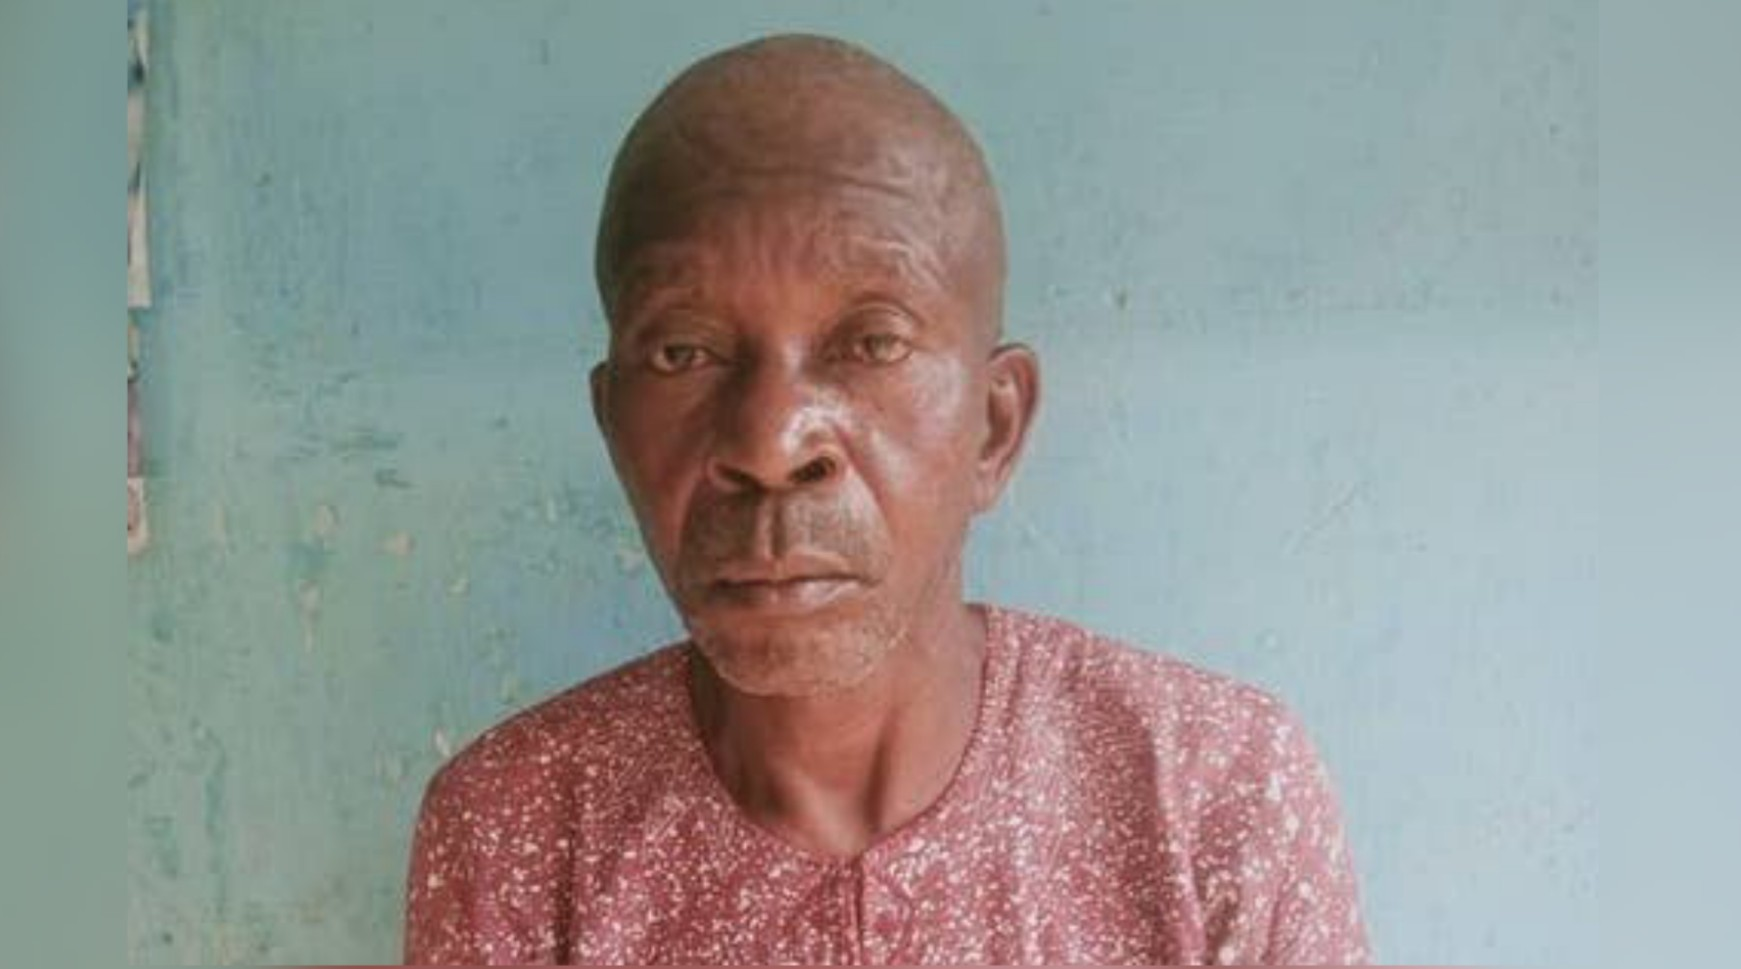 Ekiti: 65-year-old man arrested over rape of stepmother, 85